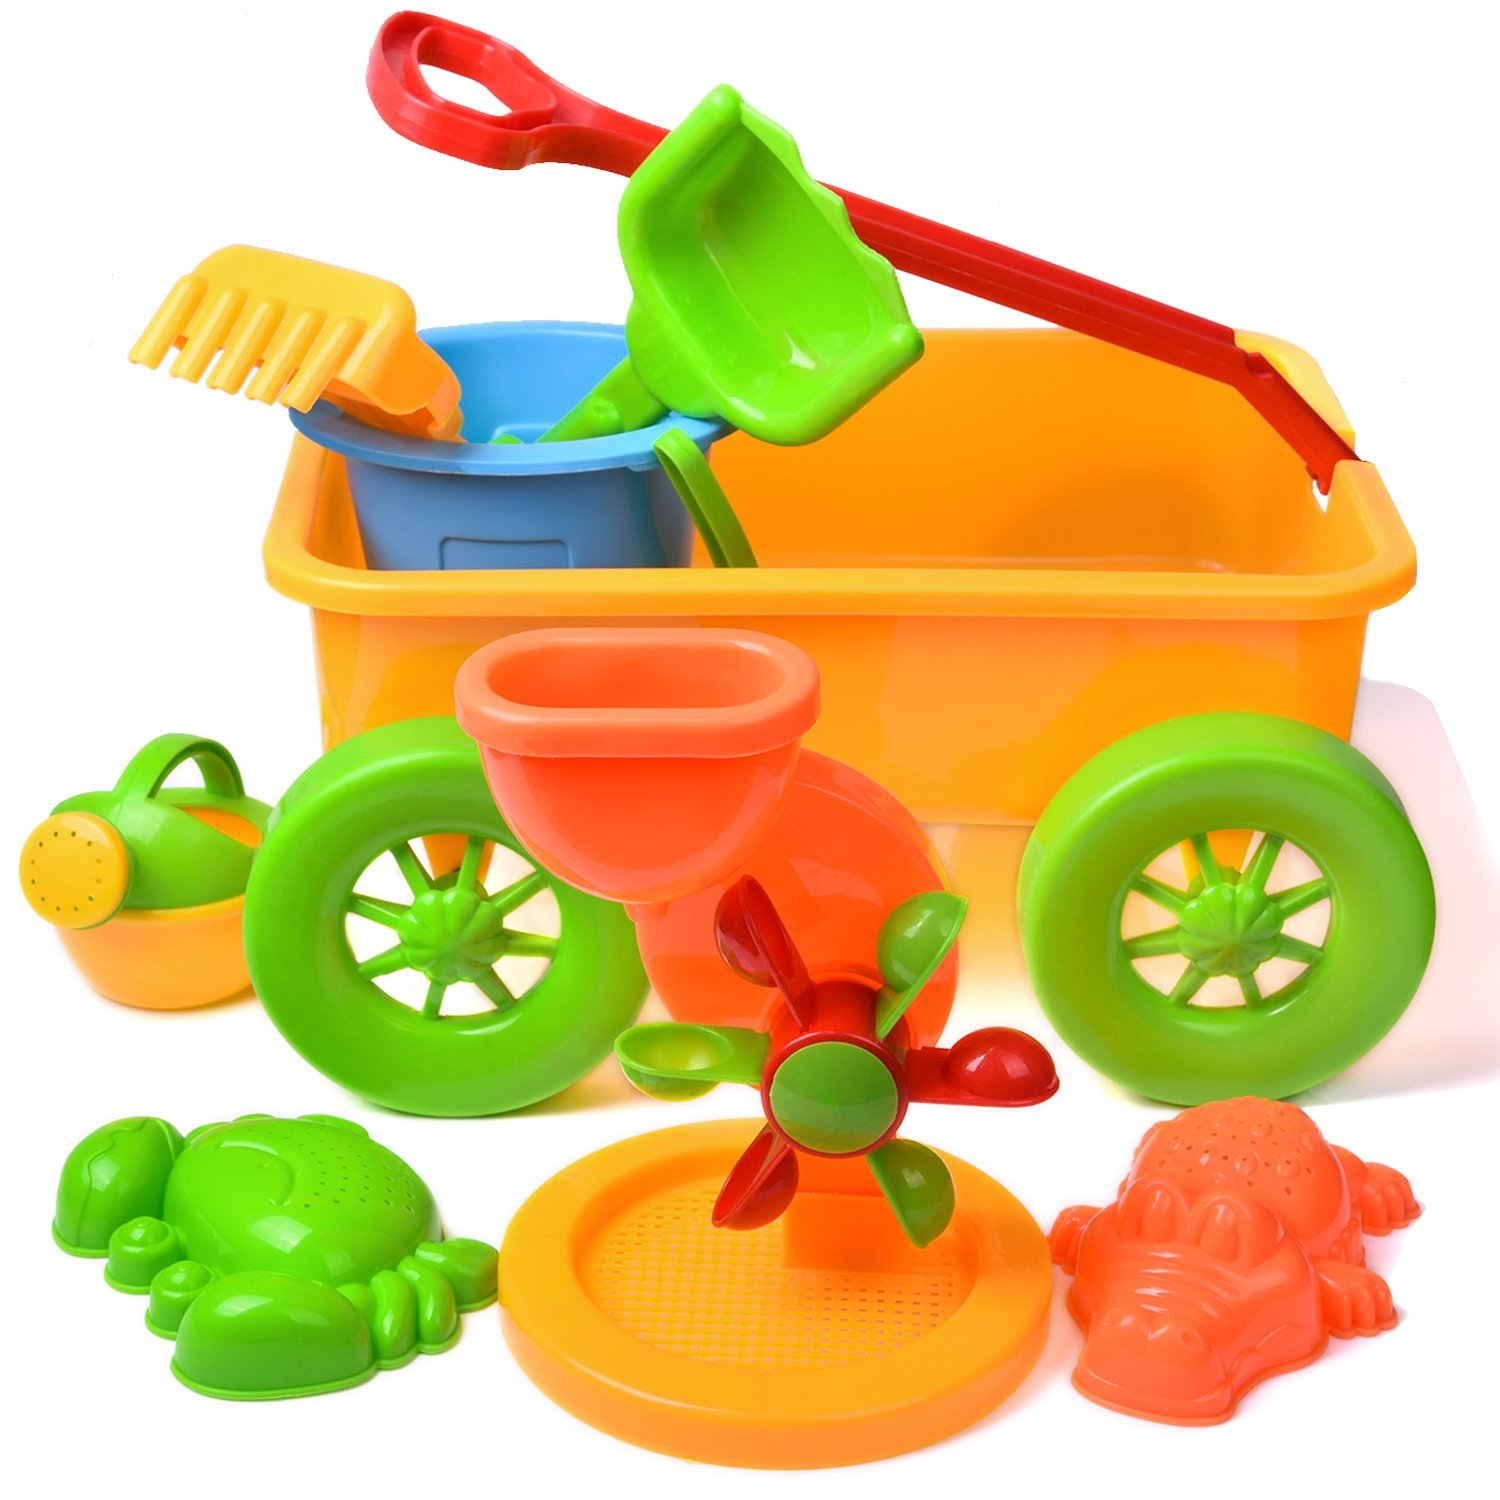 Kids Beach Sand Toys Outdoor Activities Educational Colorful Play Set with Sand Wheel for Watering Can, Shovels Set,... by Fun Little Toys